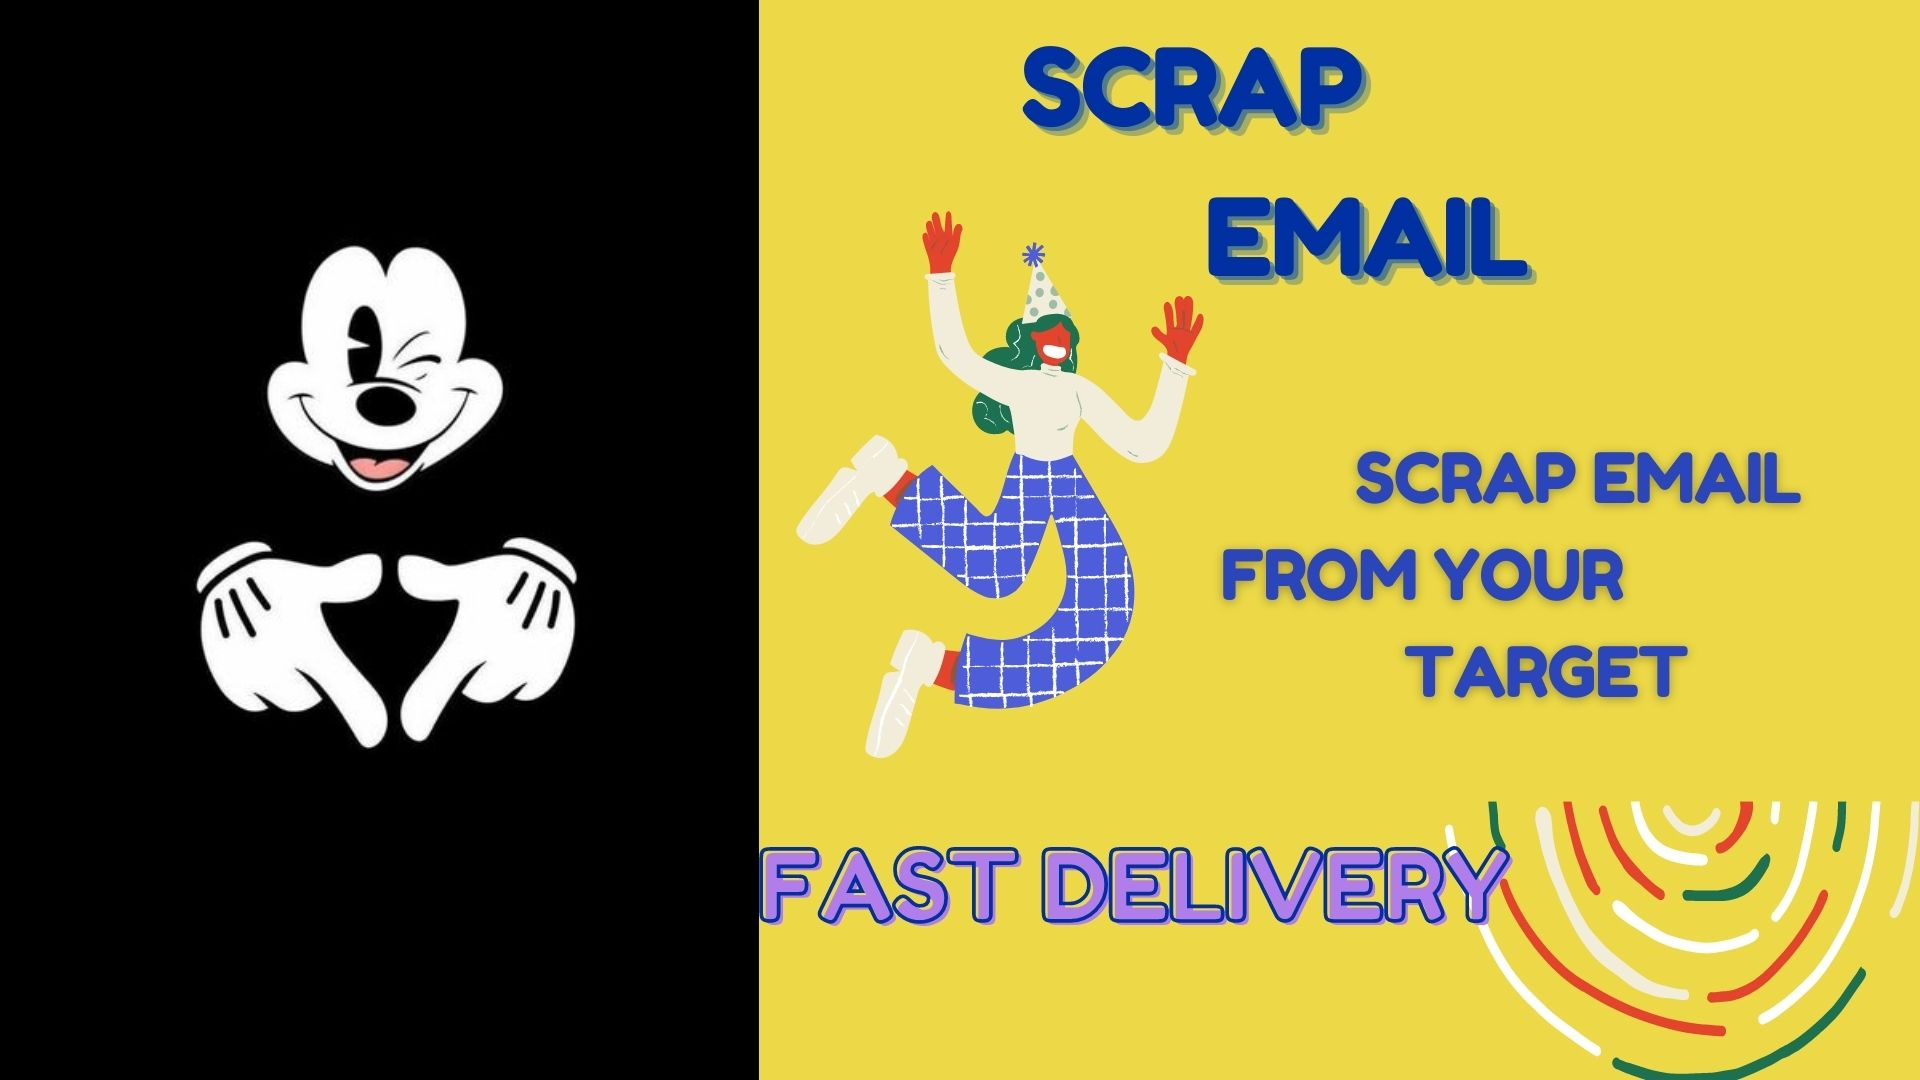 I will do perfect data entry for targeted email collection in just 1 hour